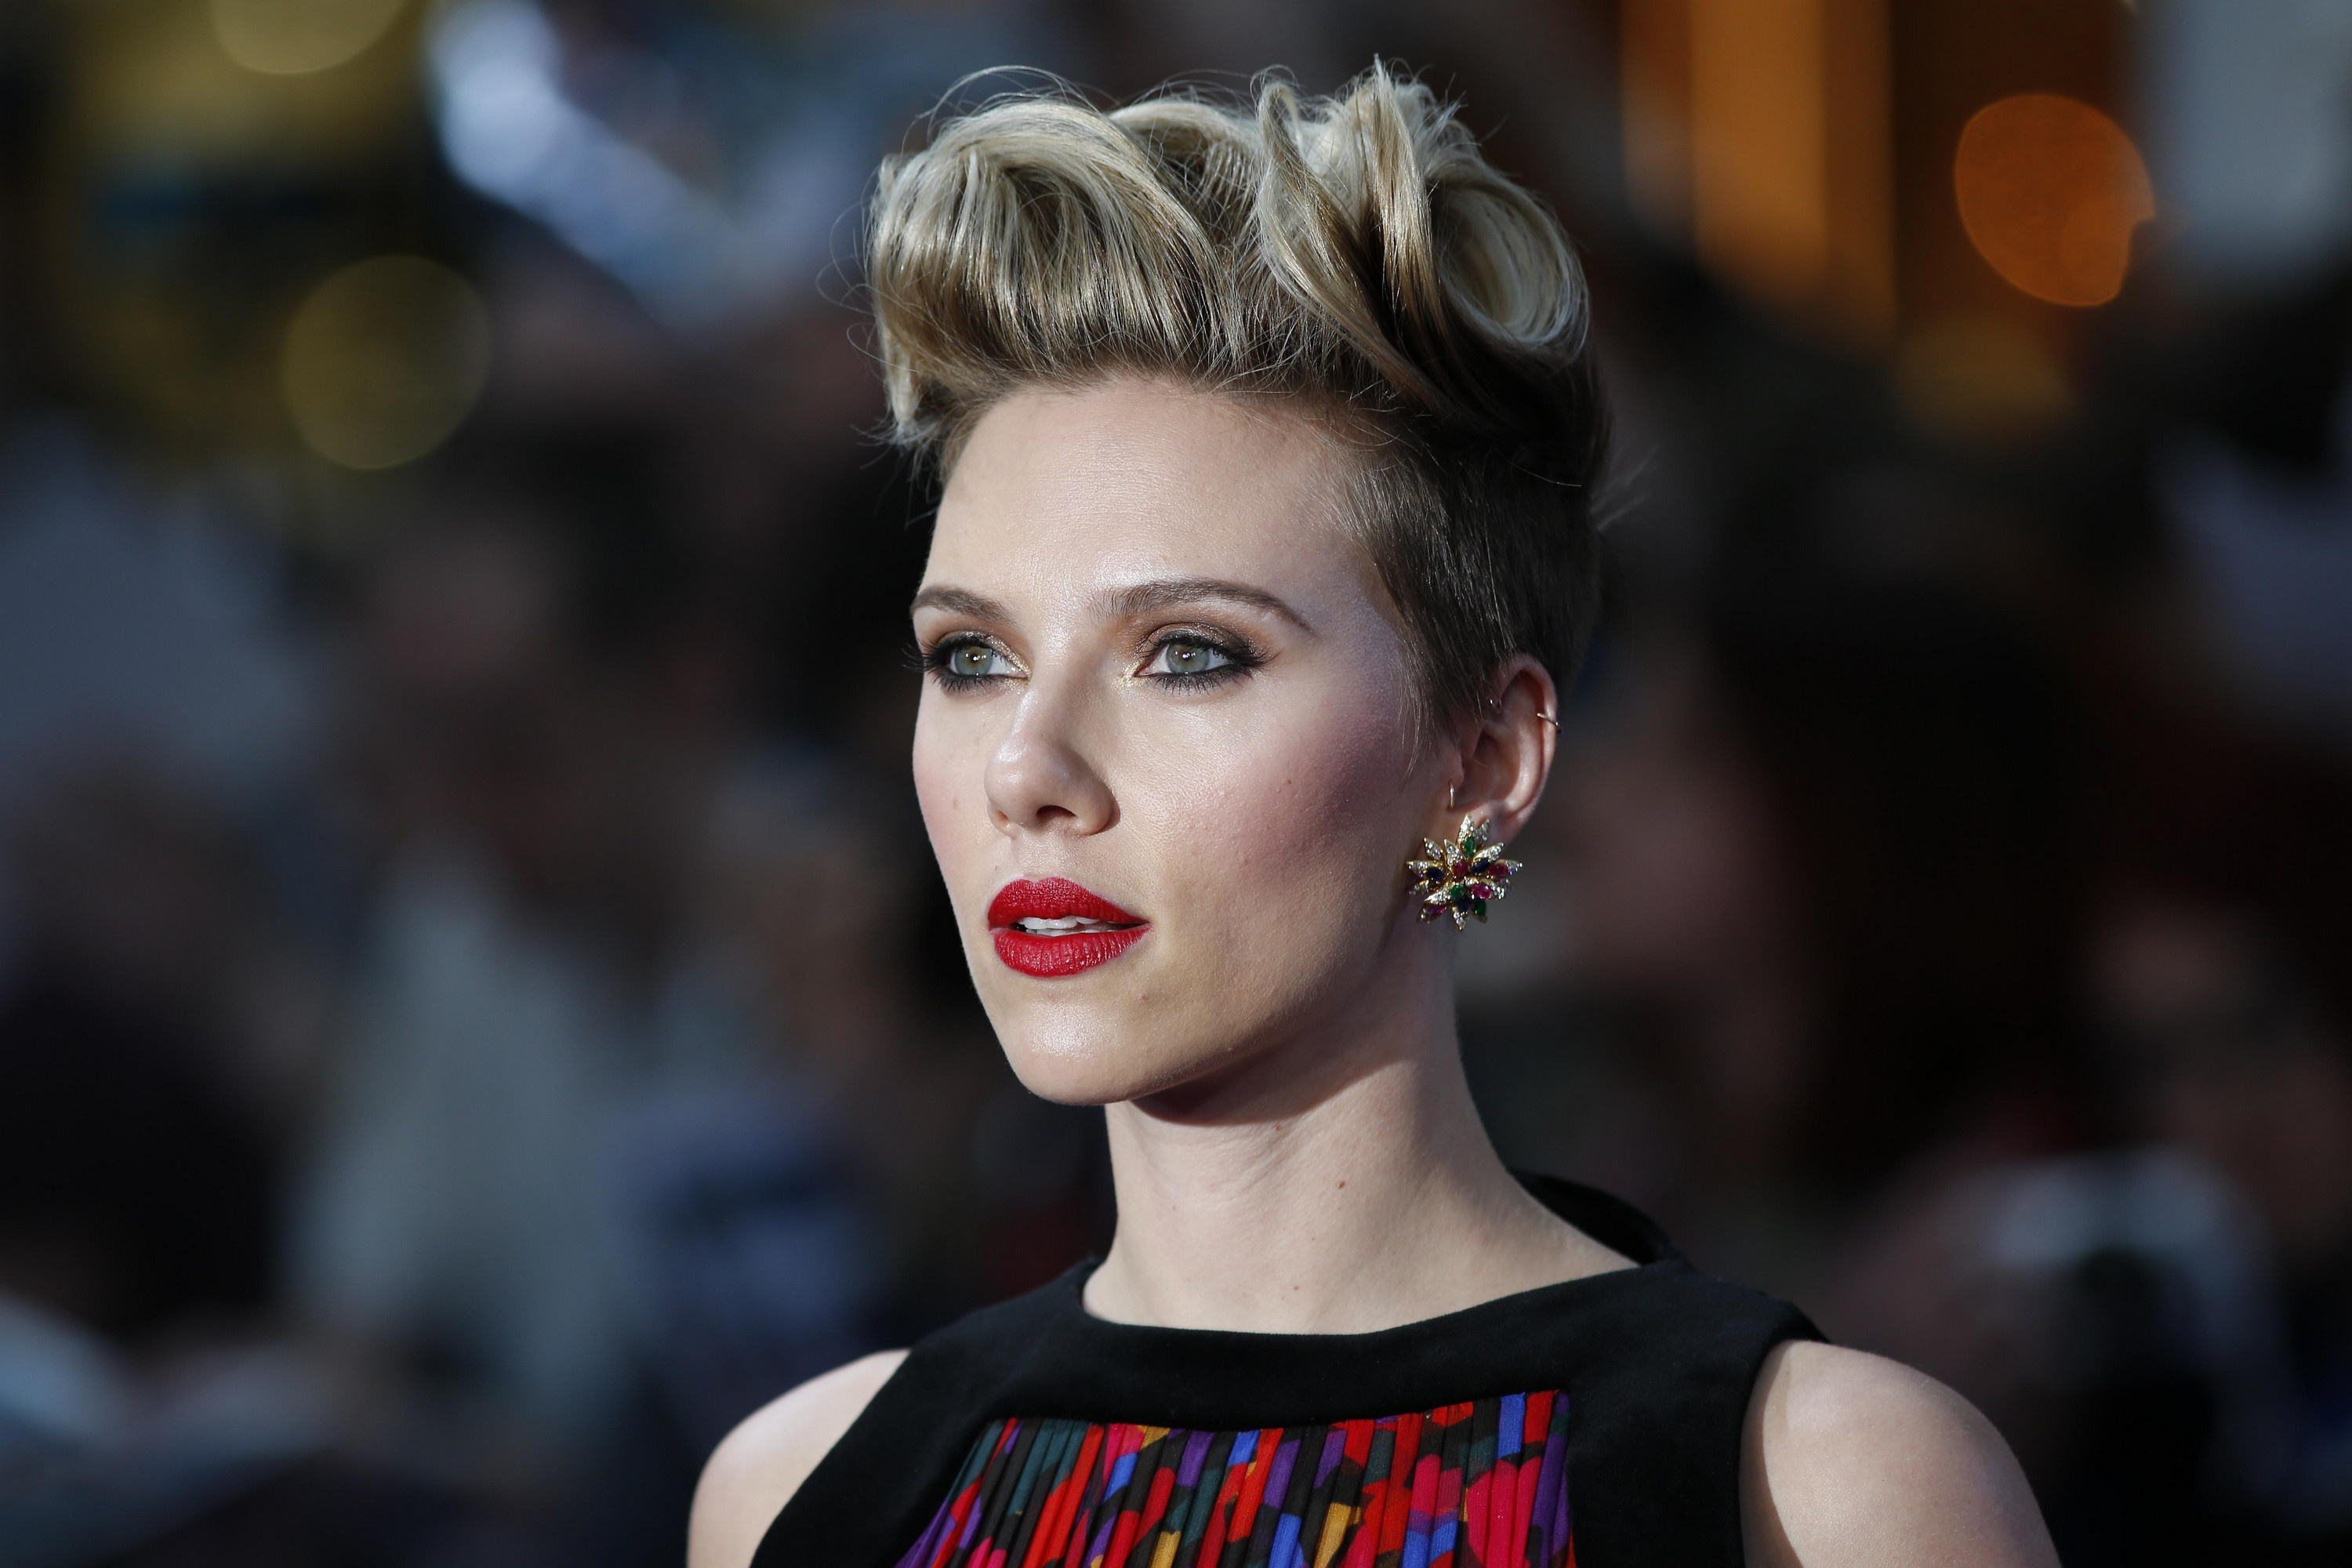 Actress American Blonde Blue Eyes Depth Of Field Earrings Lipstick Scarlett Johansson Short Hair 3000x2000